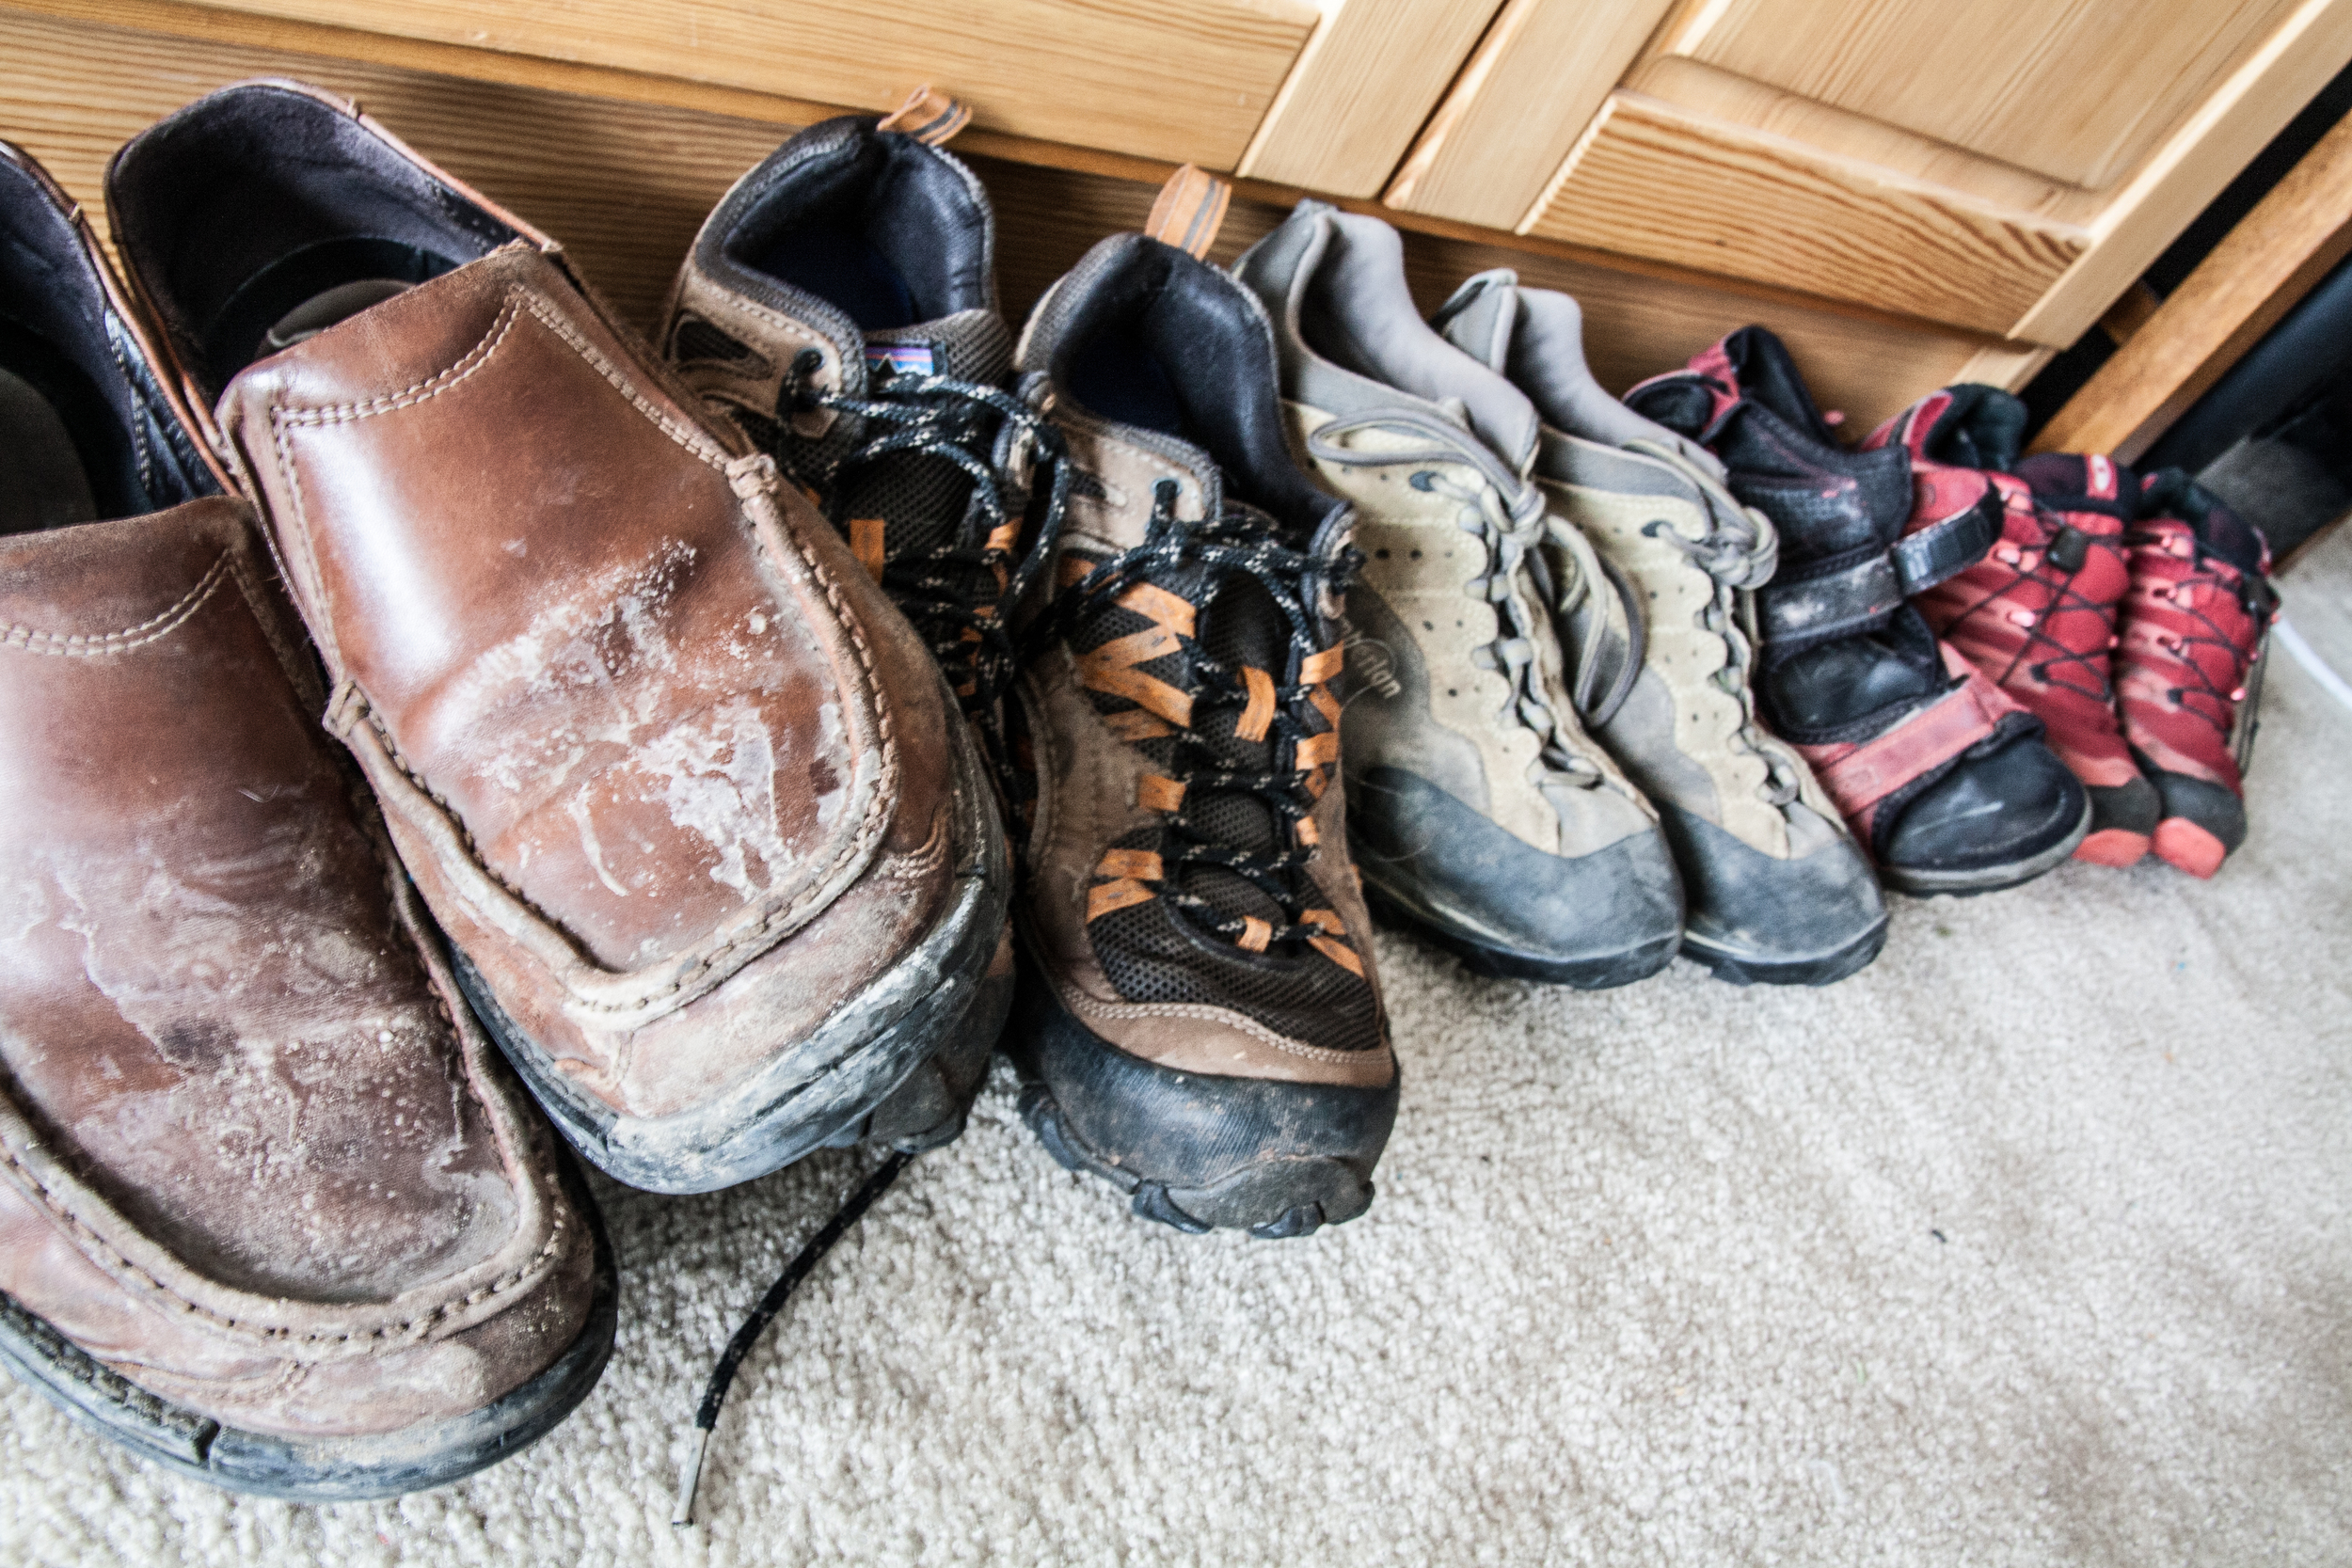 These shoes have taken us to some amazing places, between them from Thailand to Mexico, but not all havemadeit to the Netherlands, and severalhave come to the end of their road entirely.